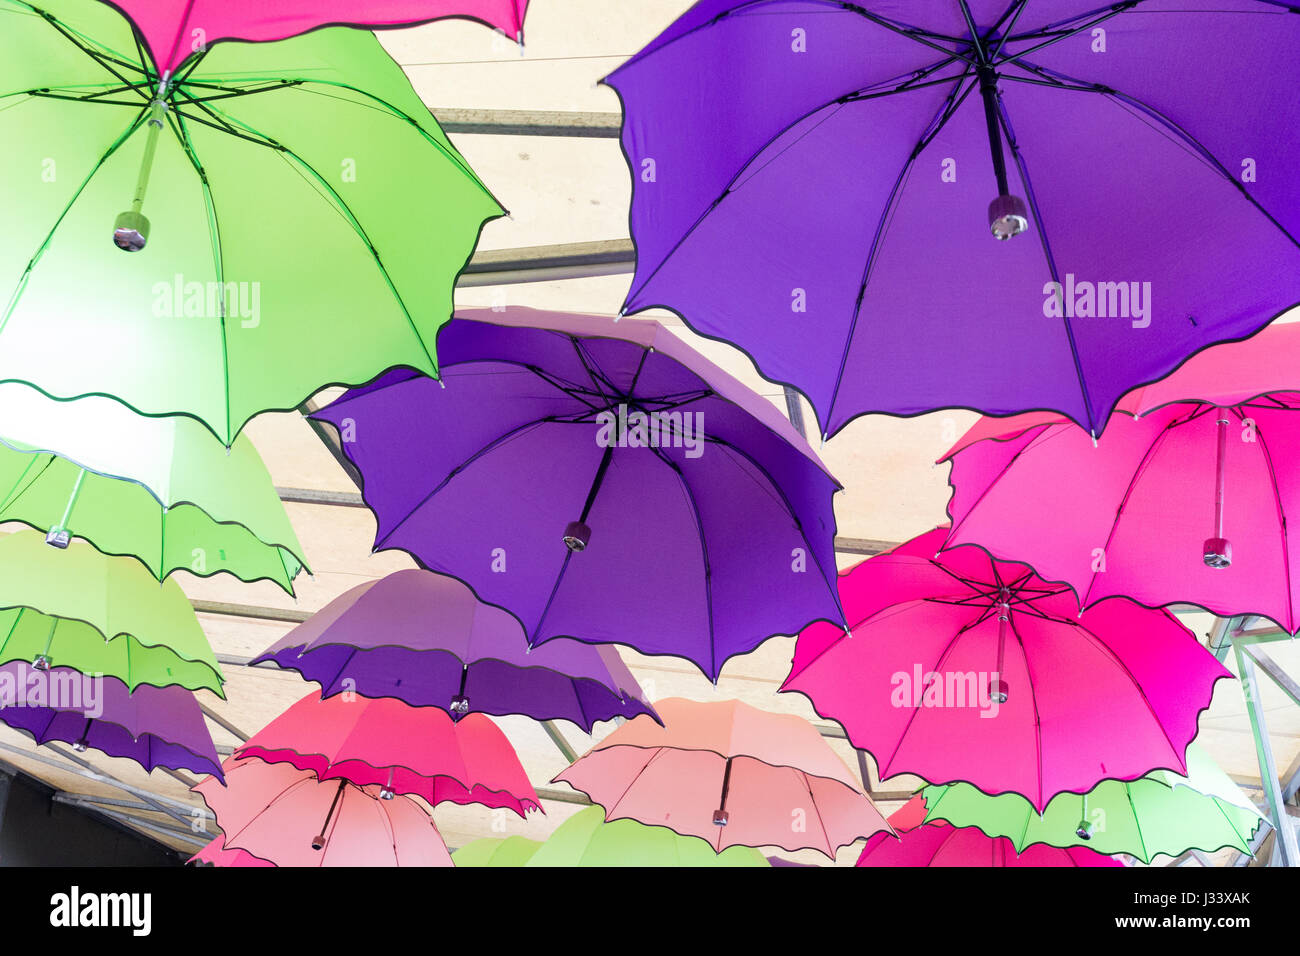 Colourful umbrellas used for decoration - Stock Image